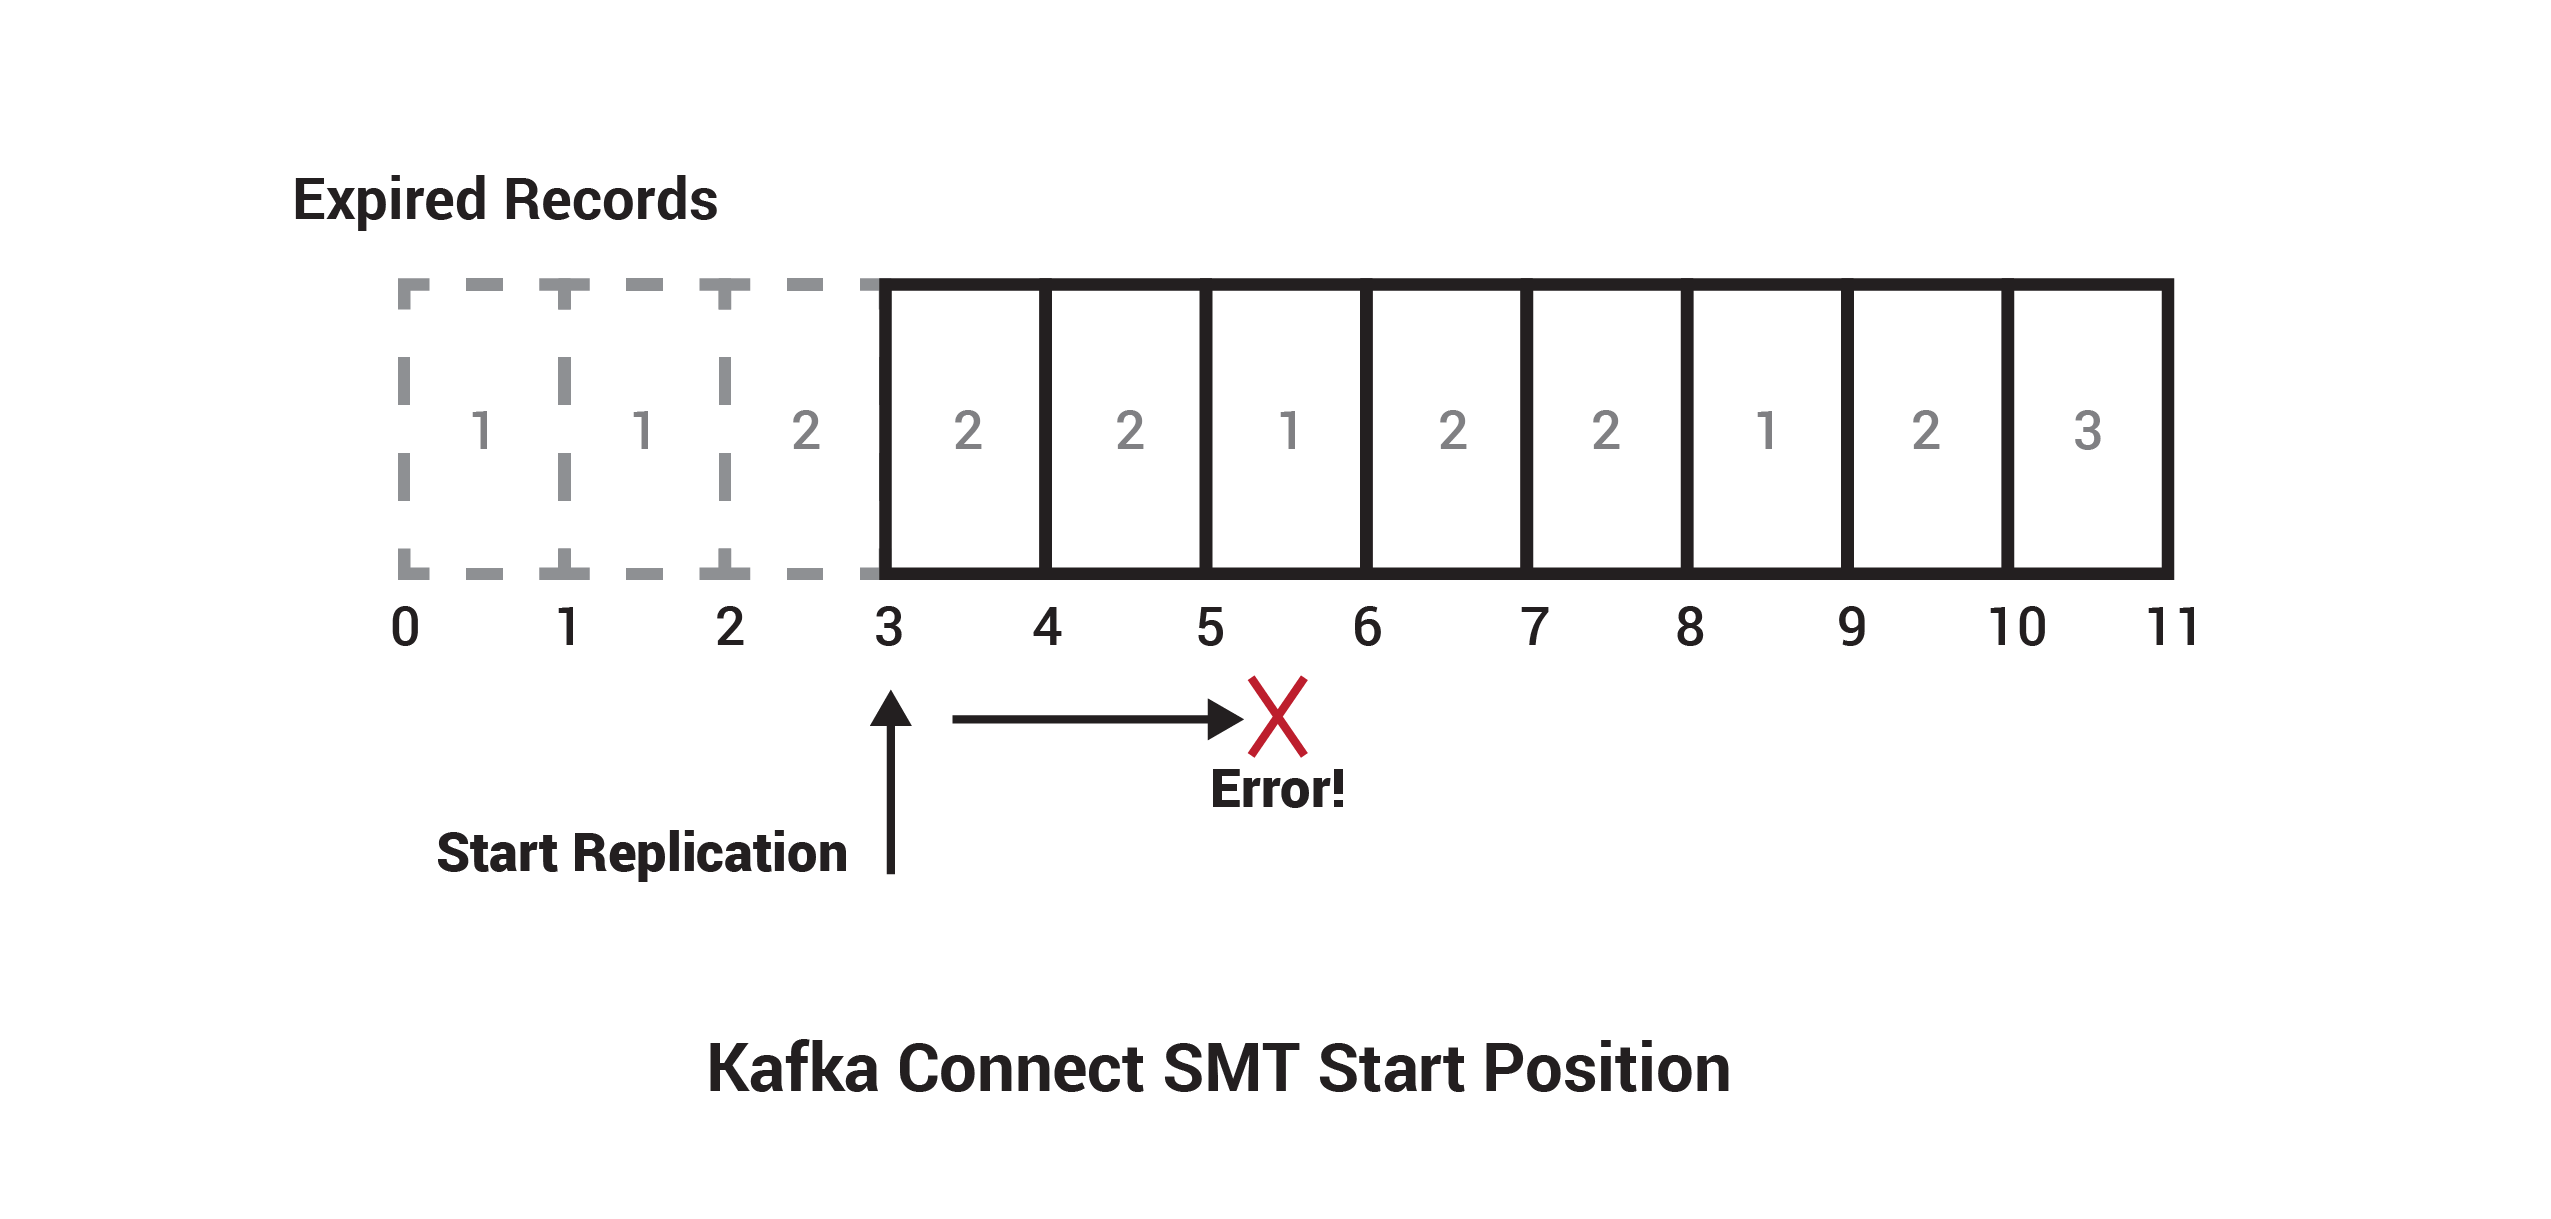 Kafka Connect SMT Start Position